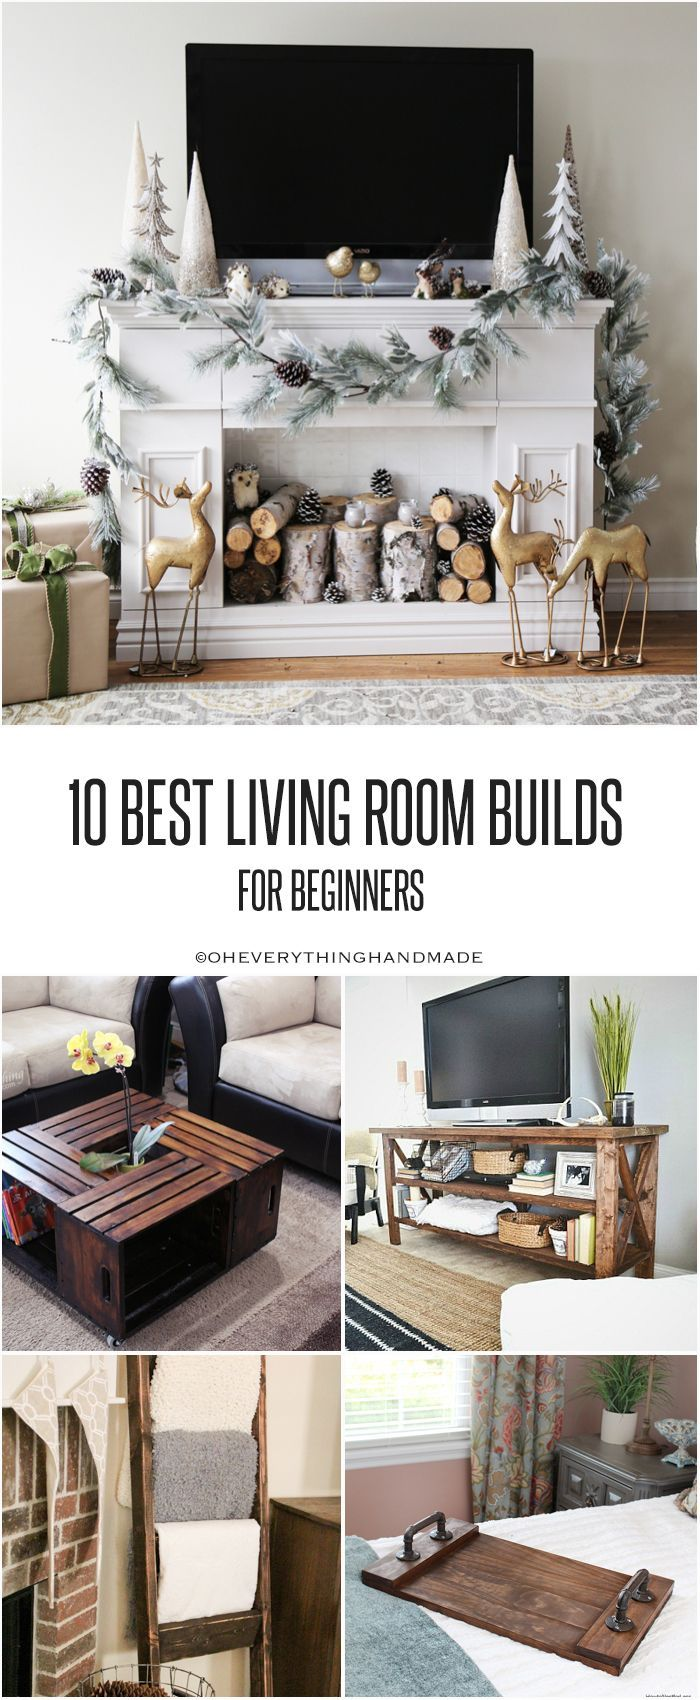 Hi you know i like me some simple building plans right so today ill be sharing 10 best living room builds for beginners these plans are easy to build